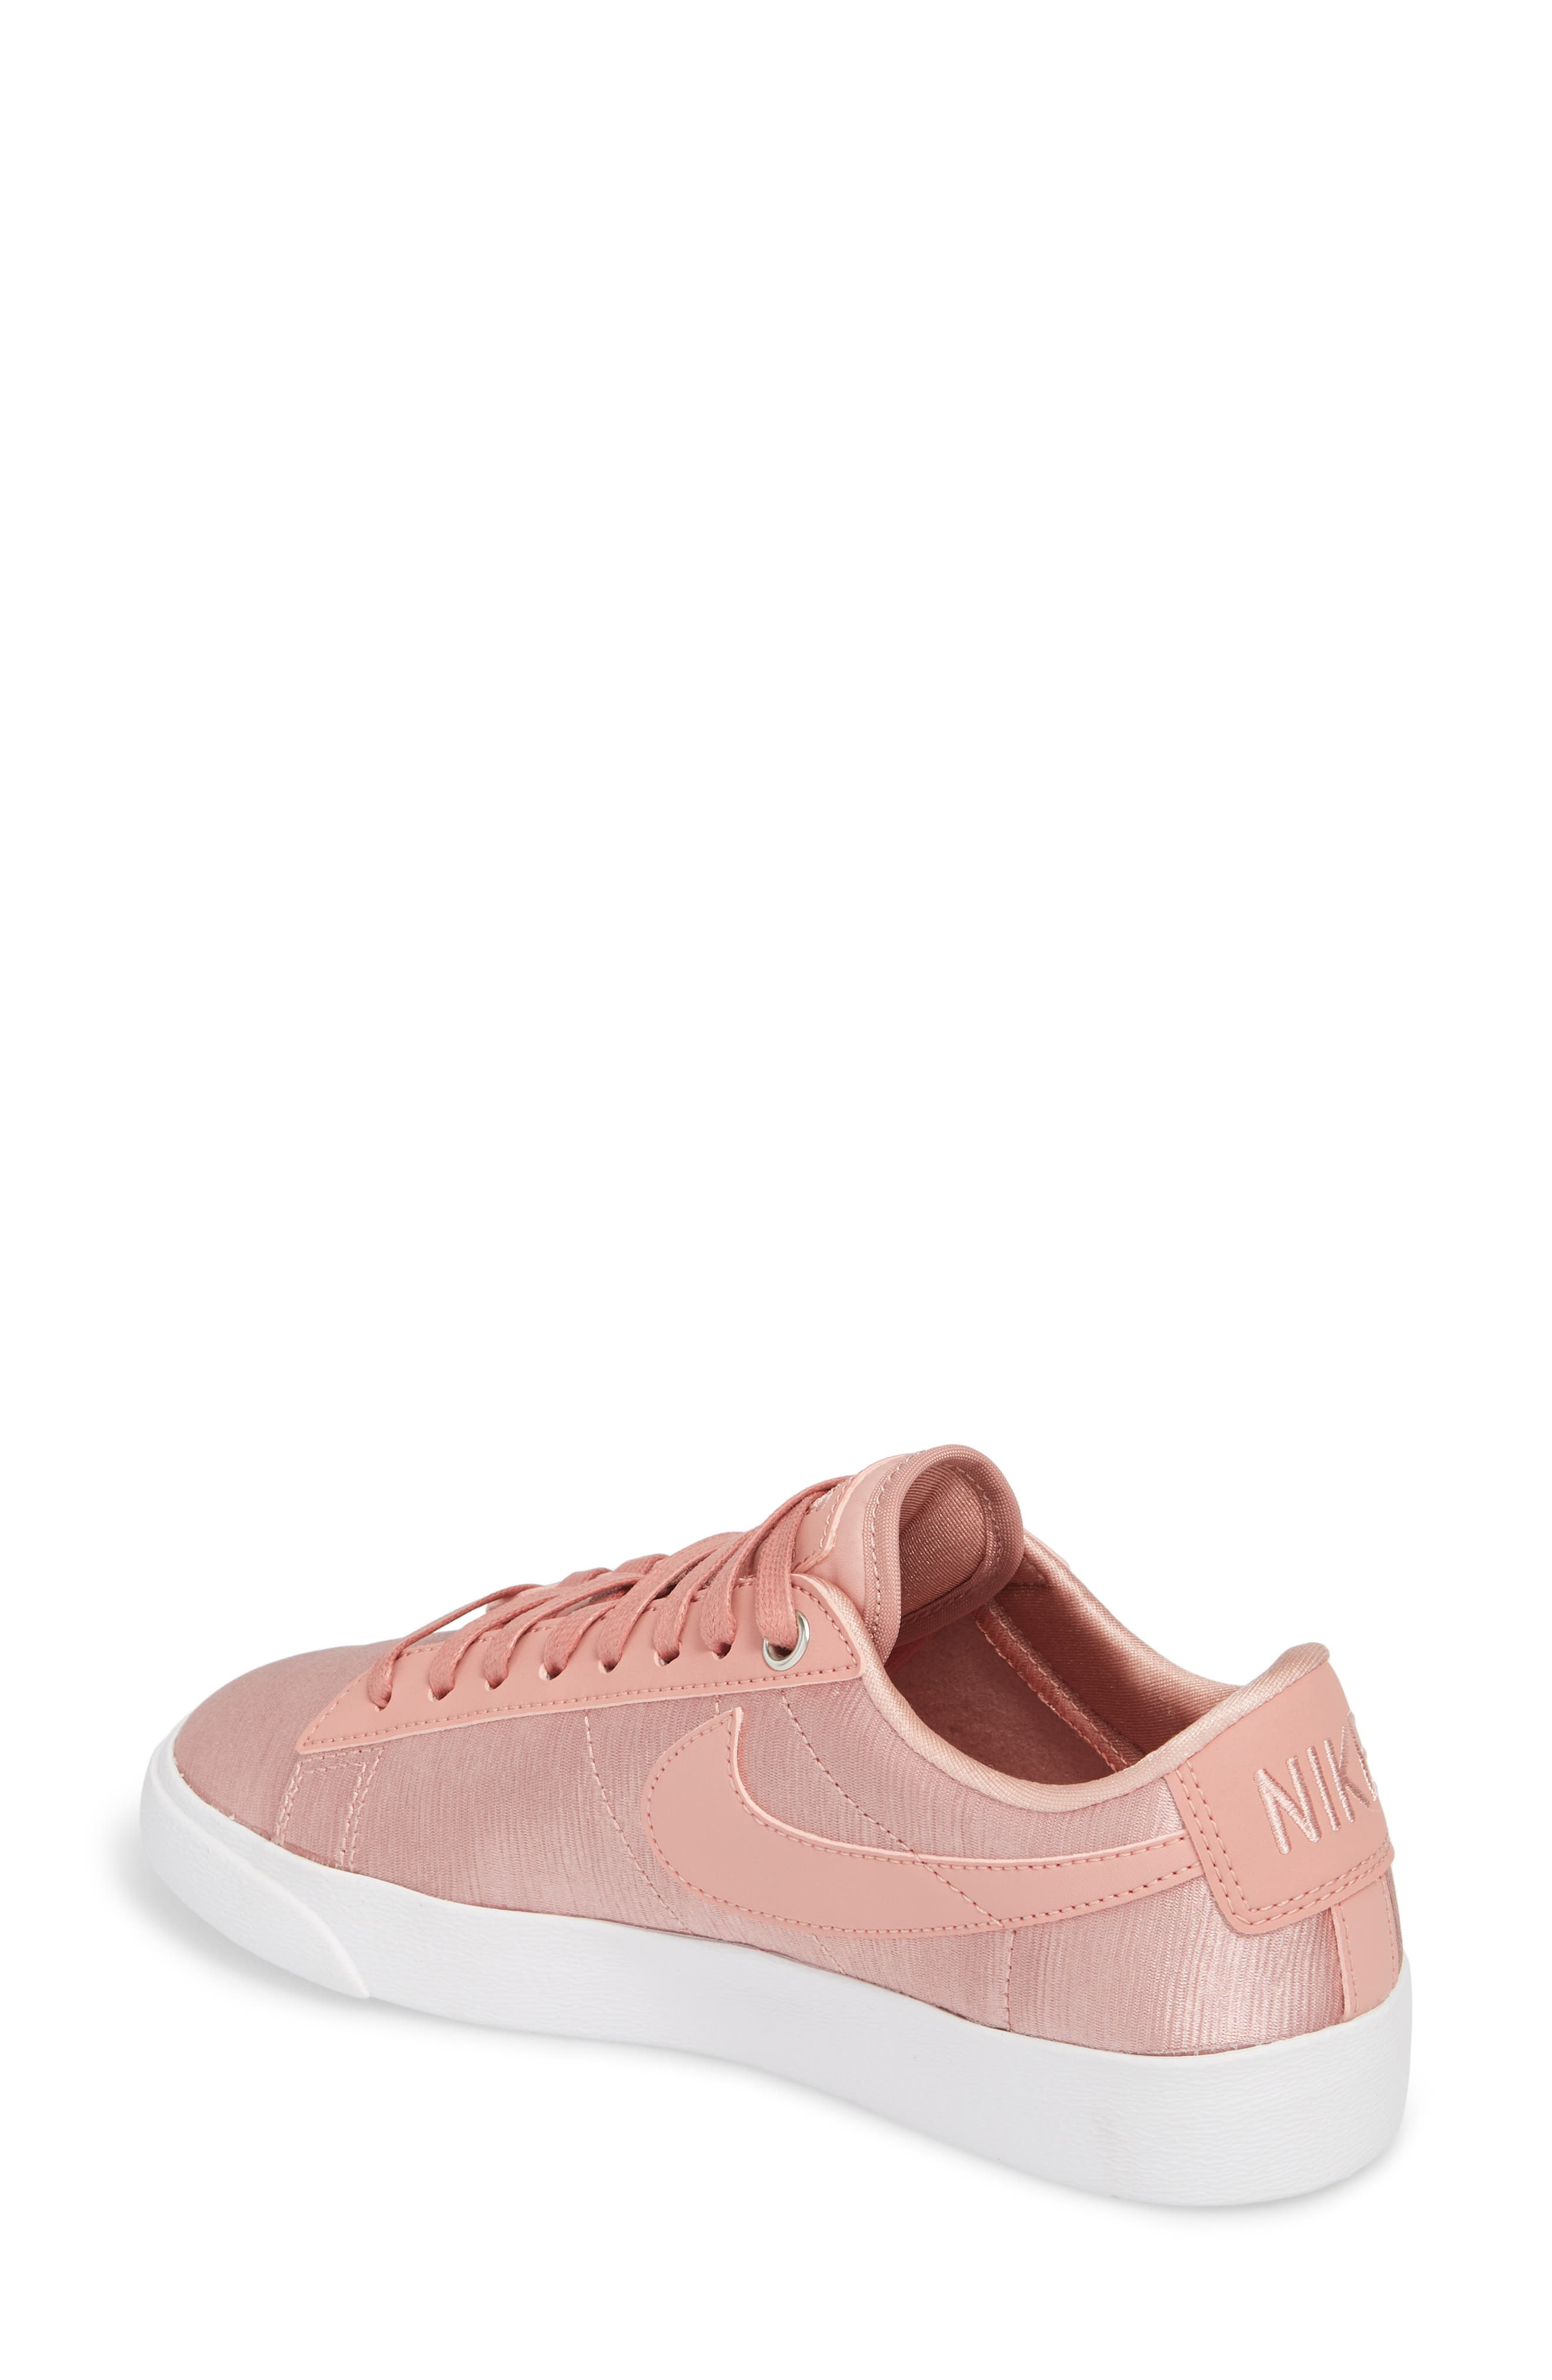 Blazer Low SE Sneaker,                             Alternate thumbnail 2, color,                             Rust Pink/ Rust Pink